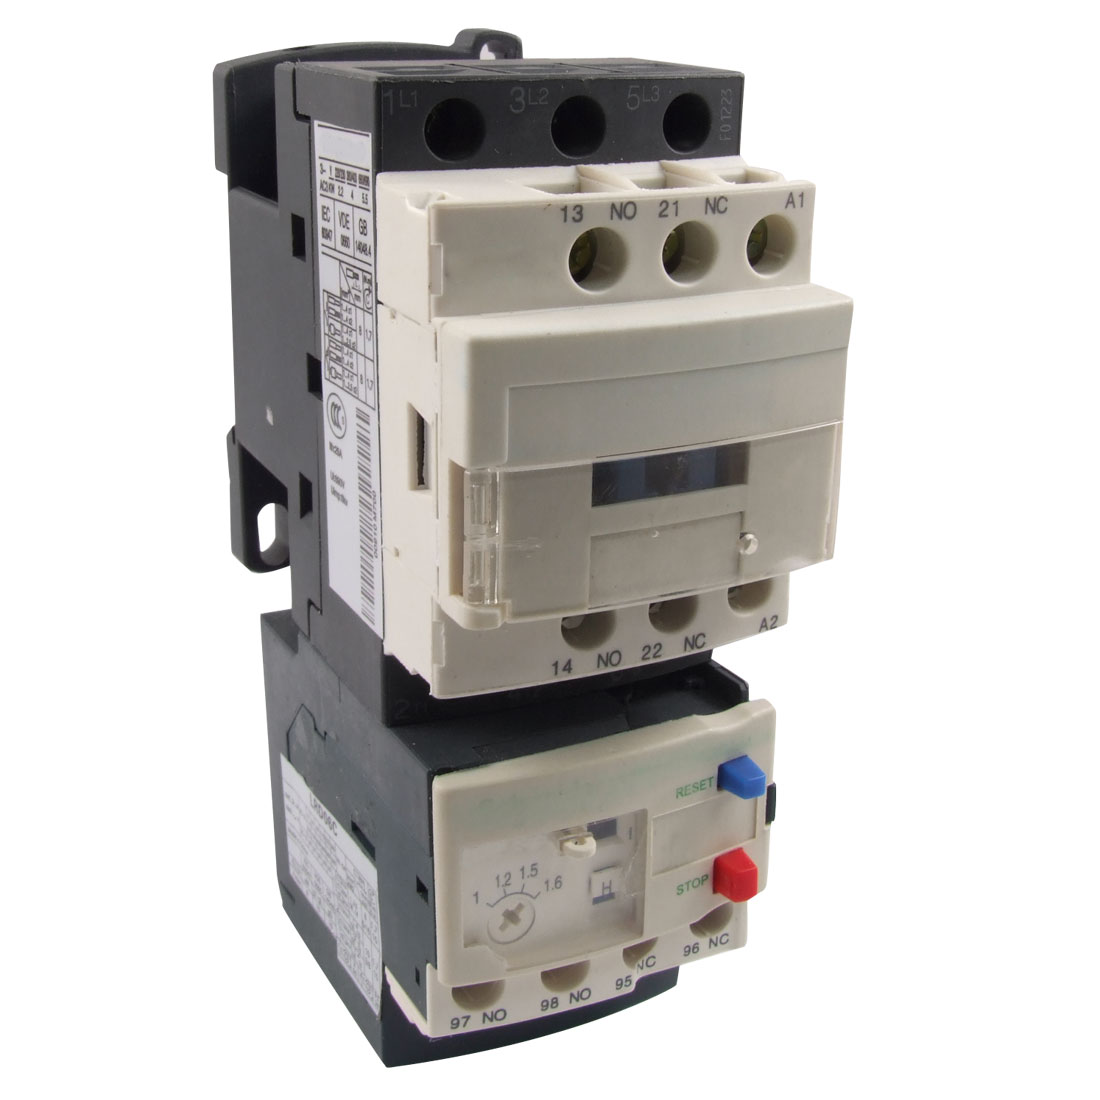 LC1D09 220V Coil AC Contactor w 1-1.6A LRD06 Thermal Overload Relay